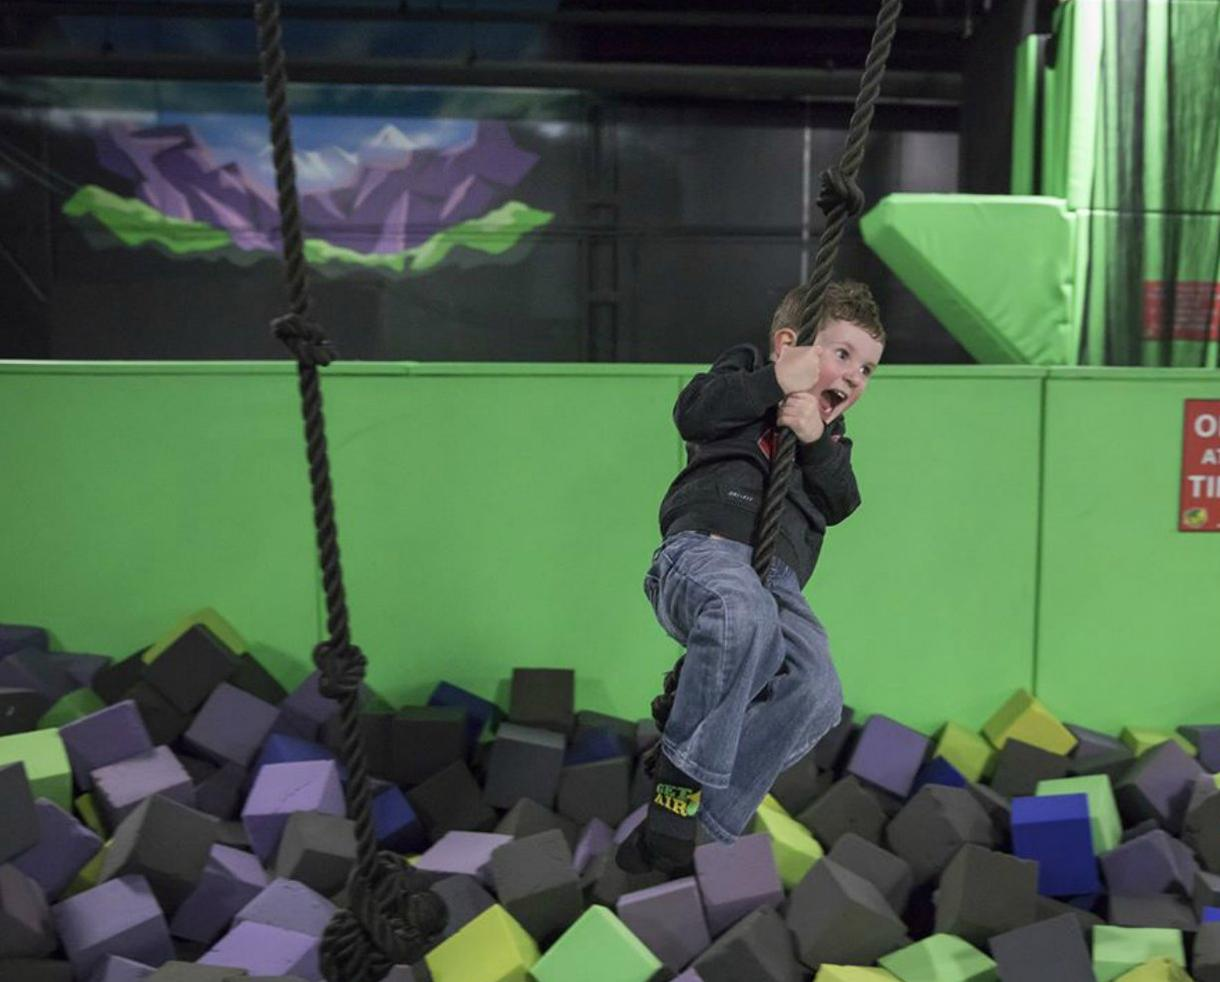 TWO 2-Hour Little Air Open Jump Admissions at BRAND NEW Get Air Trampoline Park